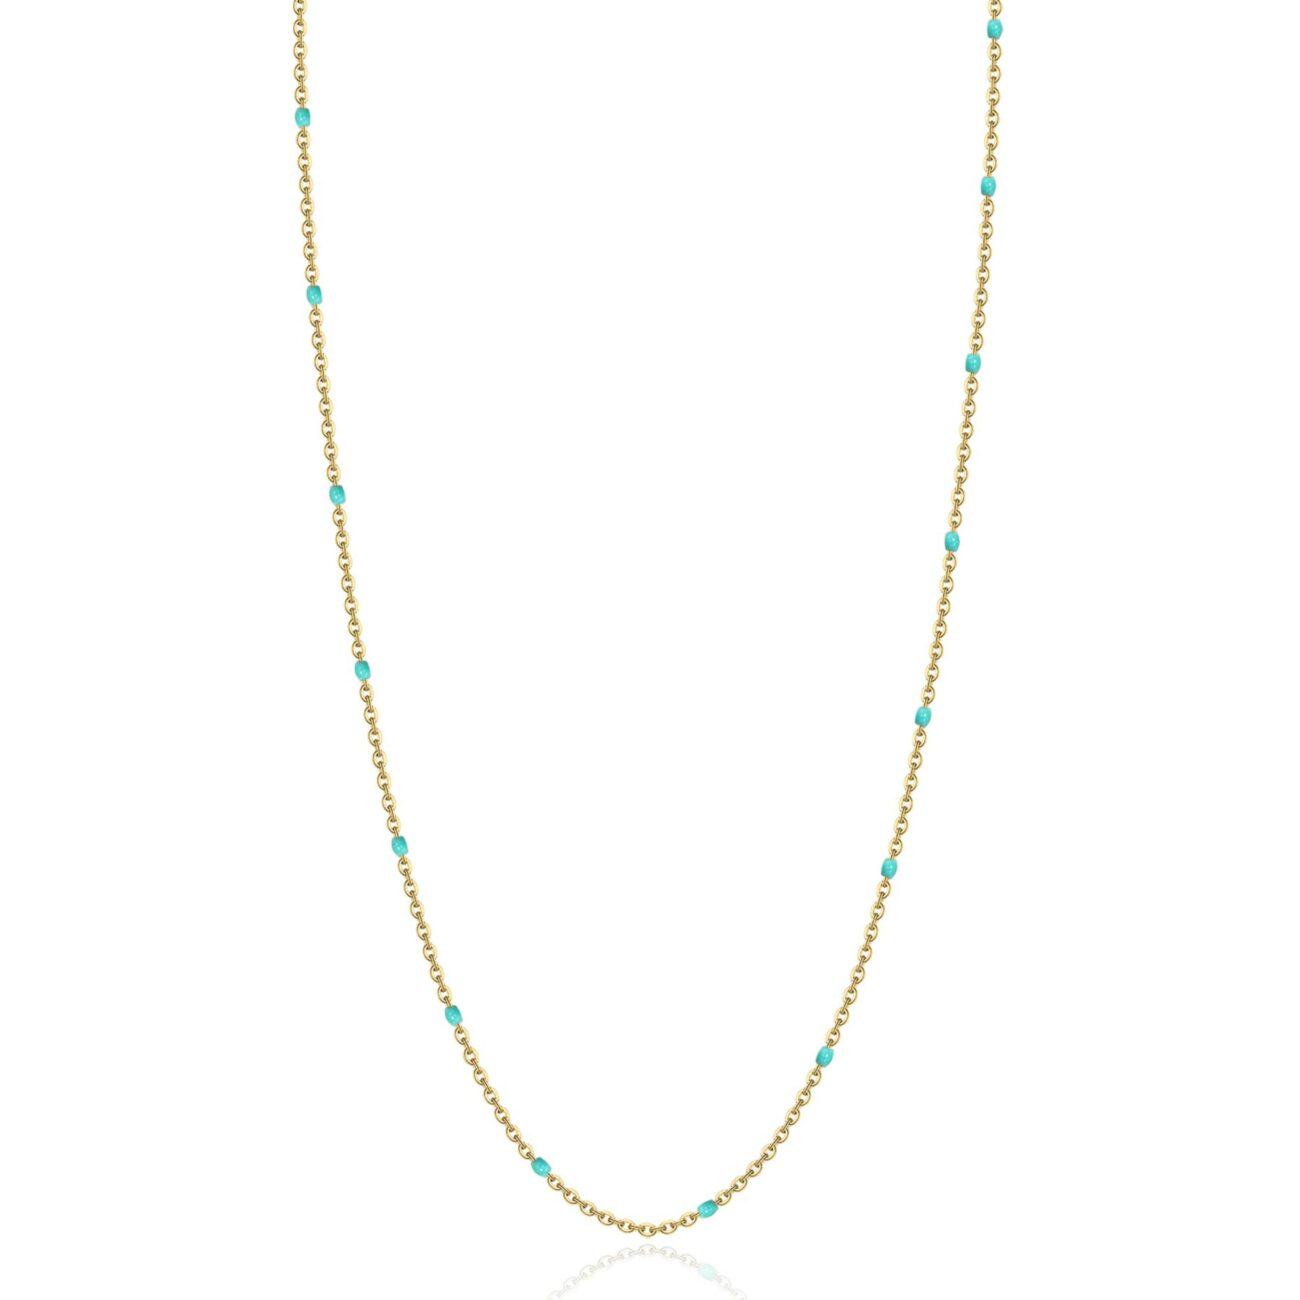 316L stainless steel necklace, gold finishes and turquoise enamel.